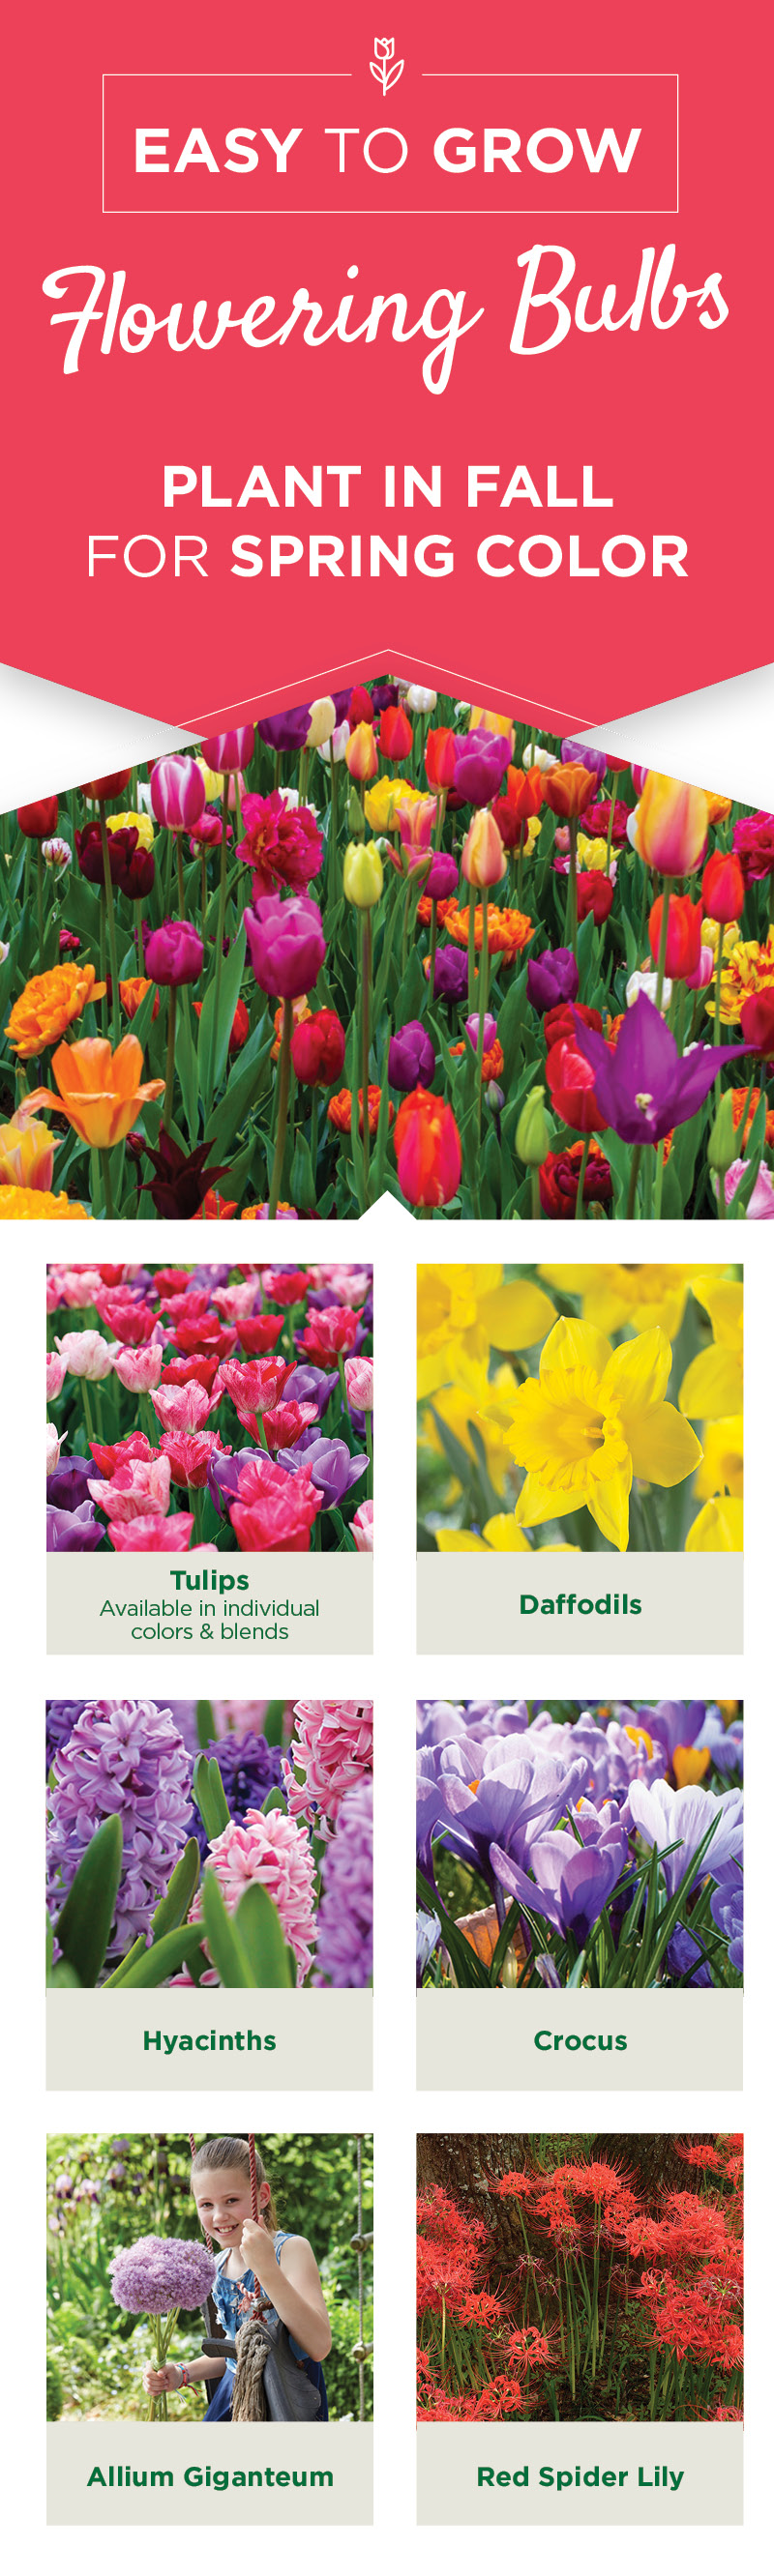 Easy to Grow Flowering Bulbs | TLC